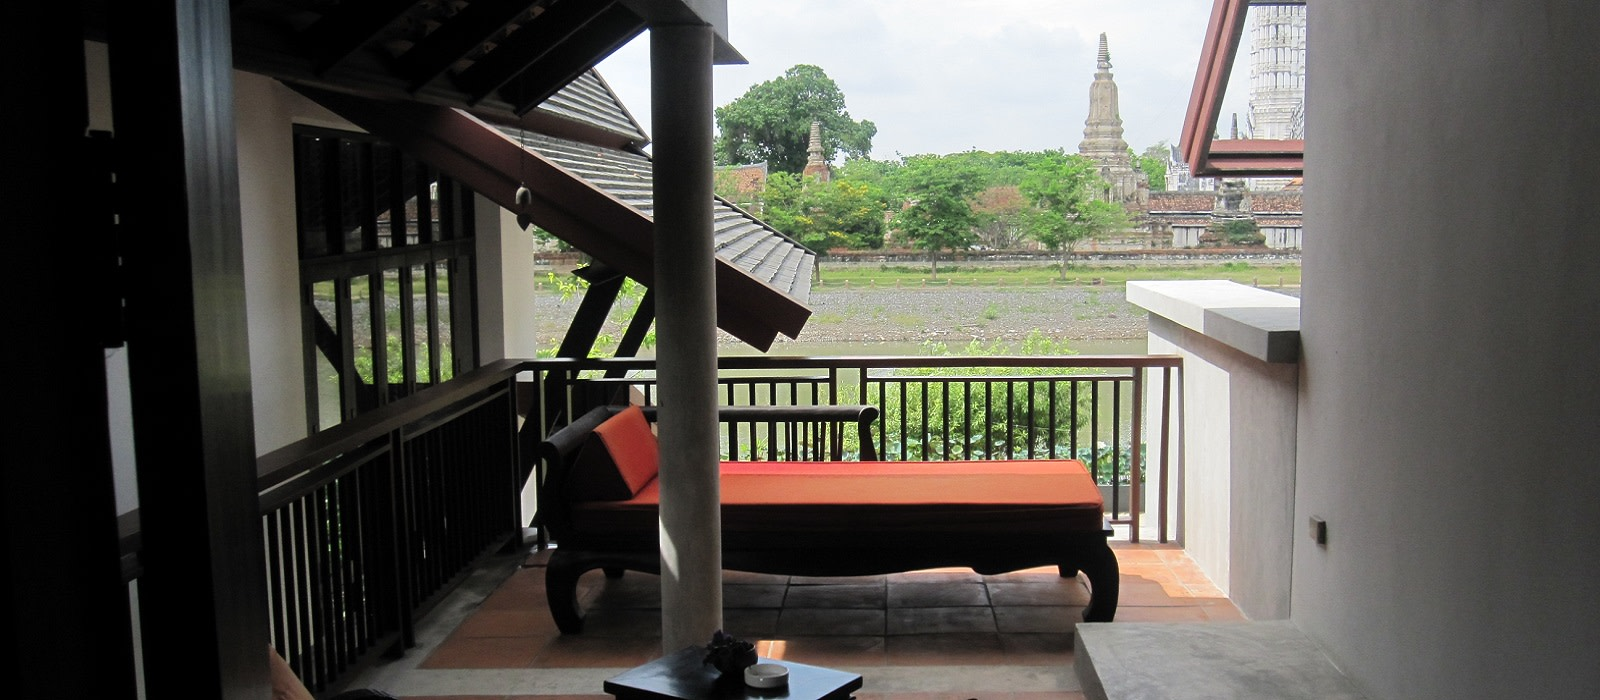 Hotel Iudia on the River Thailand